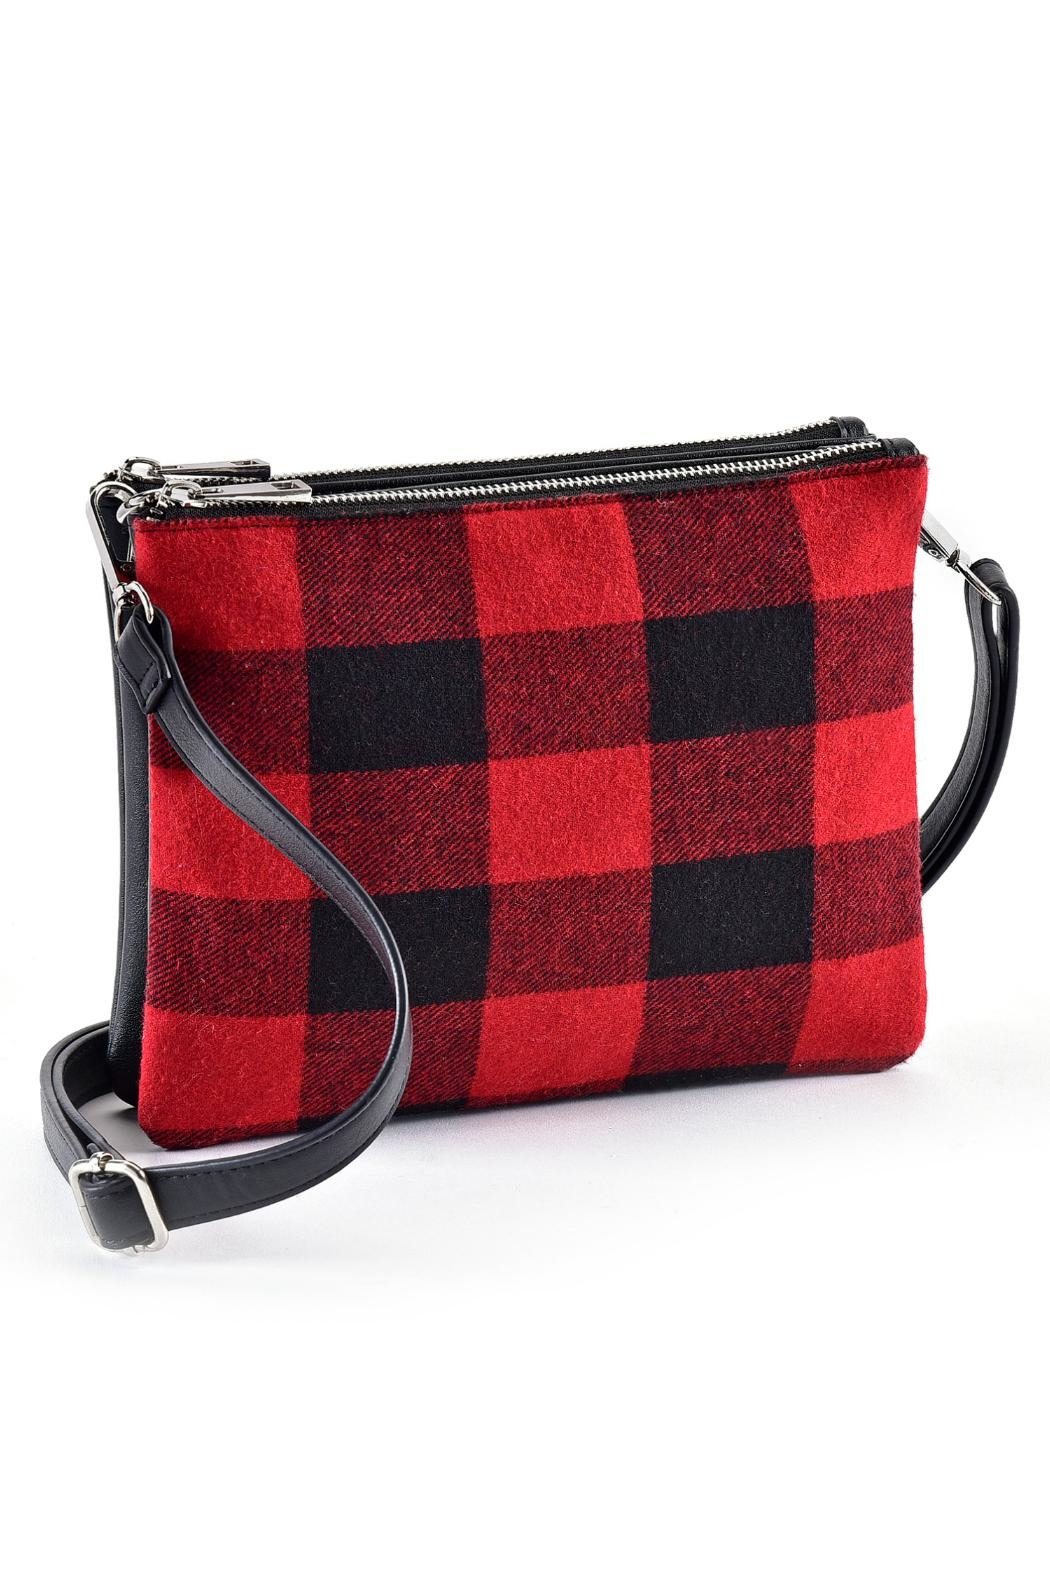 Charlie Paige Festive Plaid Crossbody - Main Image